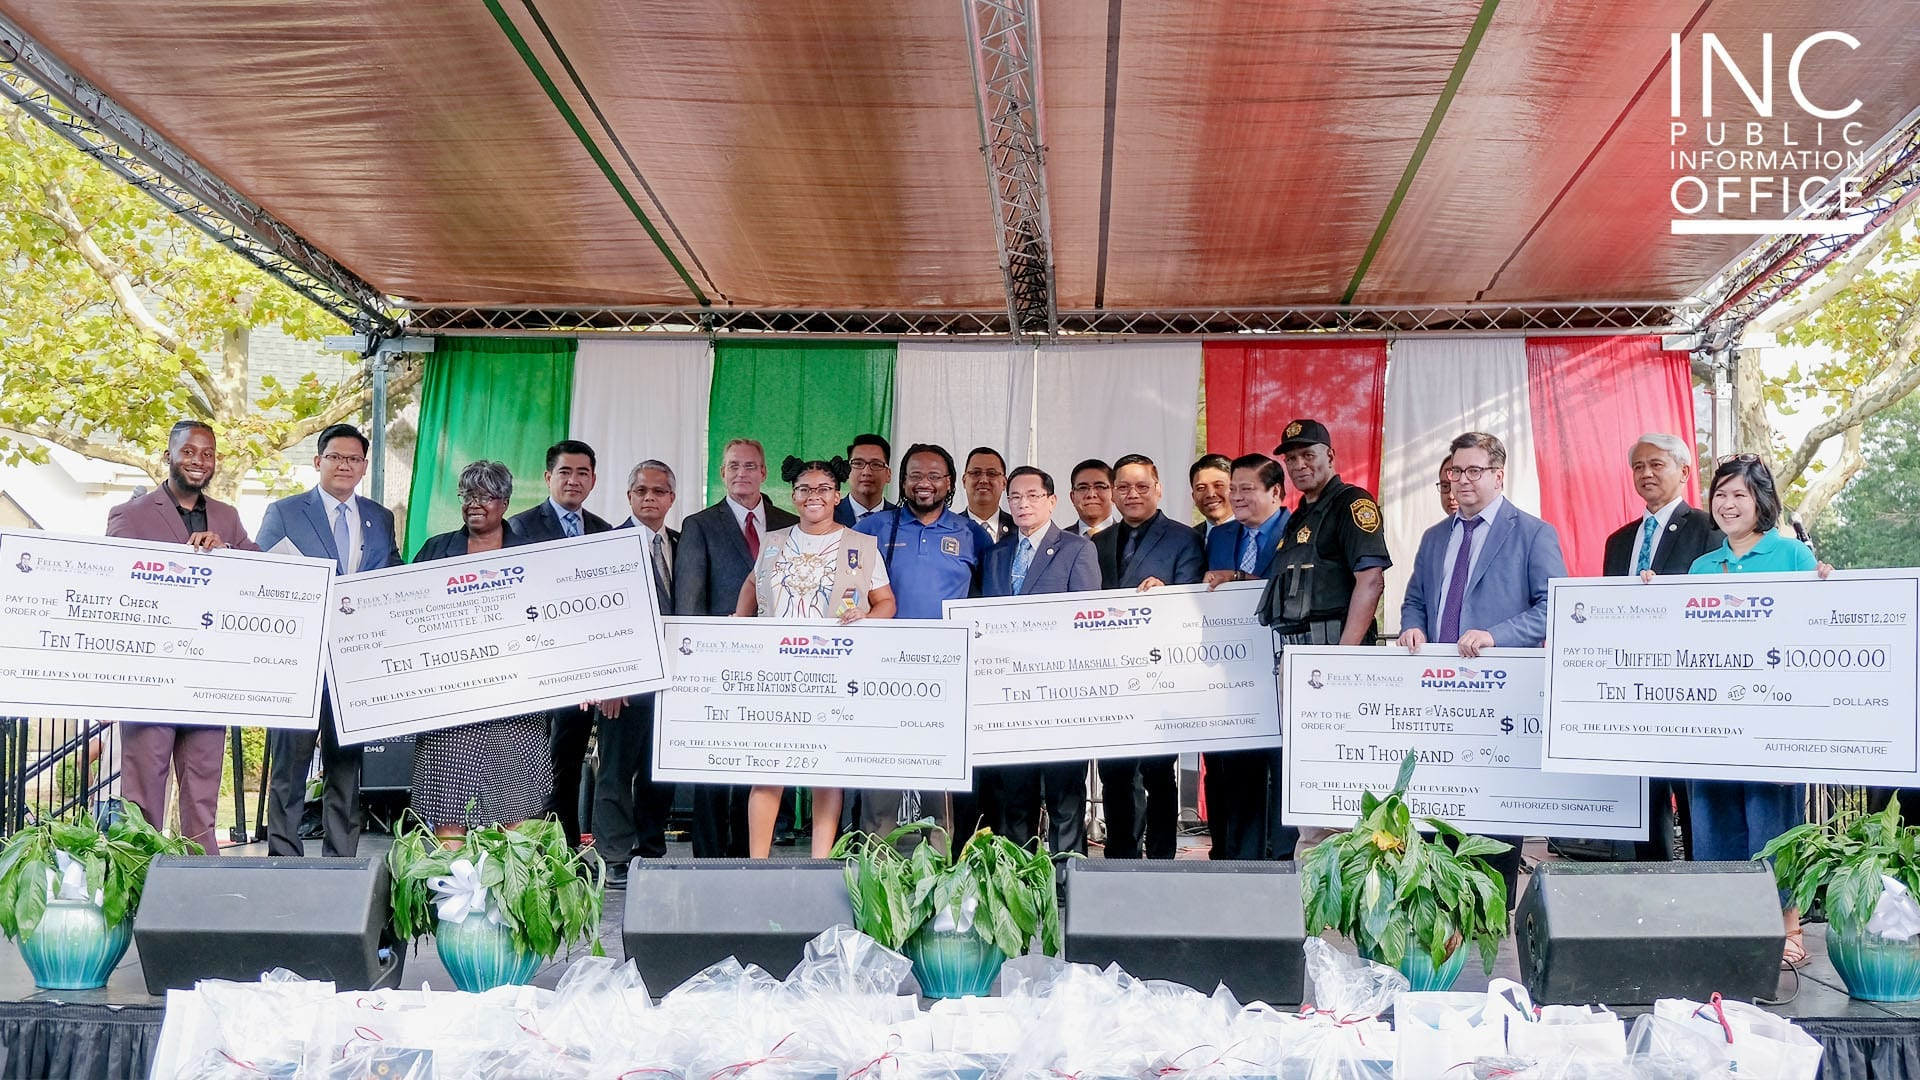 Six local organizations receive $10,000 in charitable donation funding at Aid to Humanity event